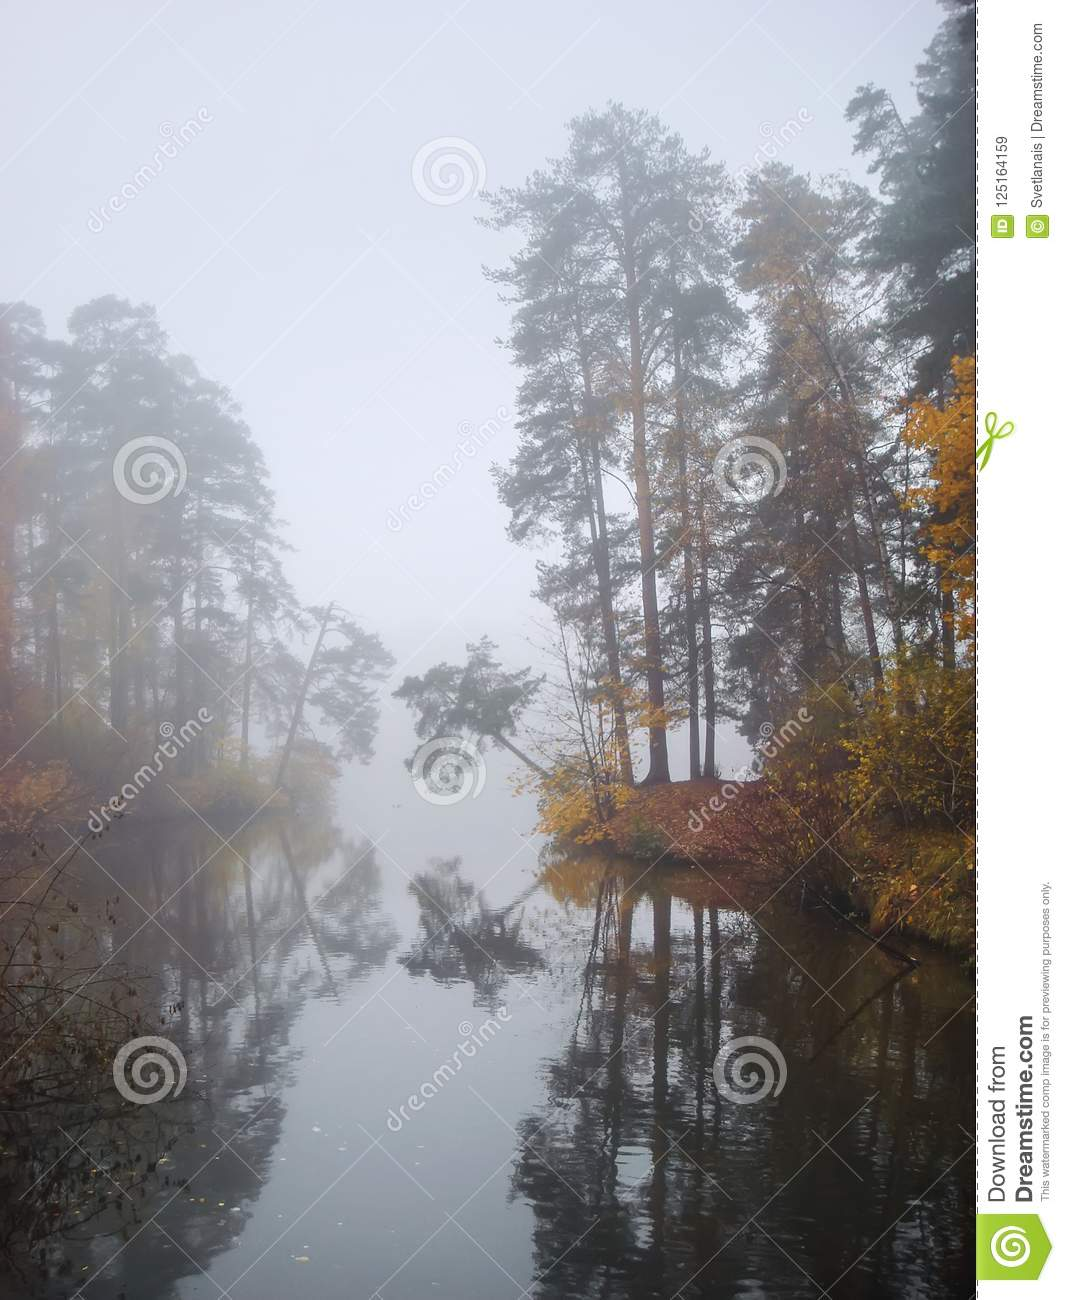 Surreal Ethereal Forest With Fog Royalty-Free Stock